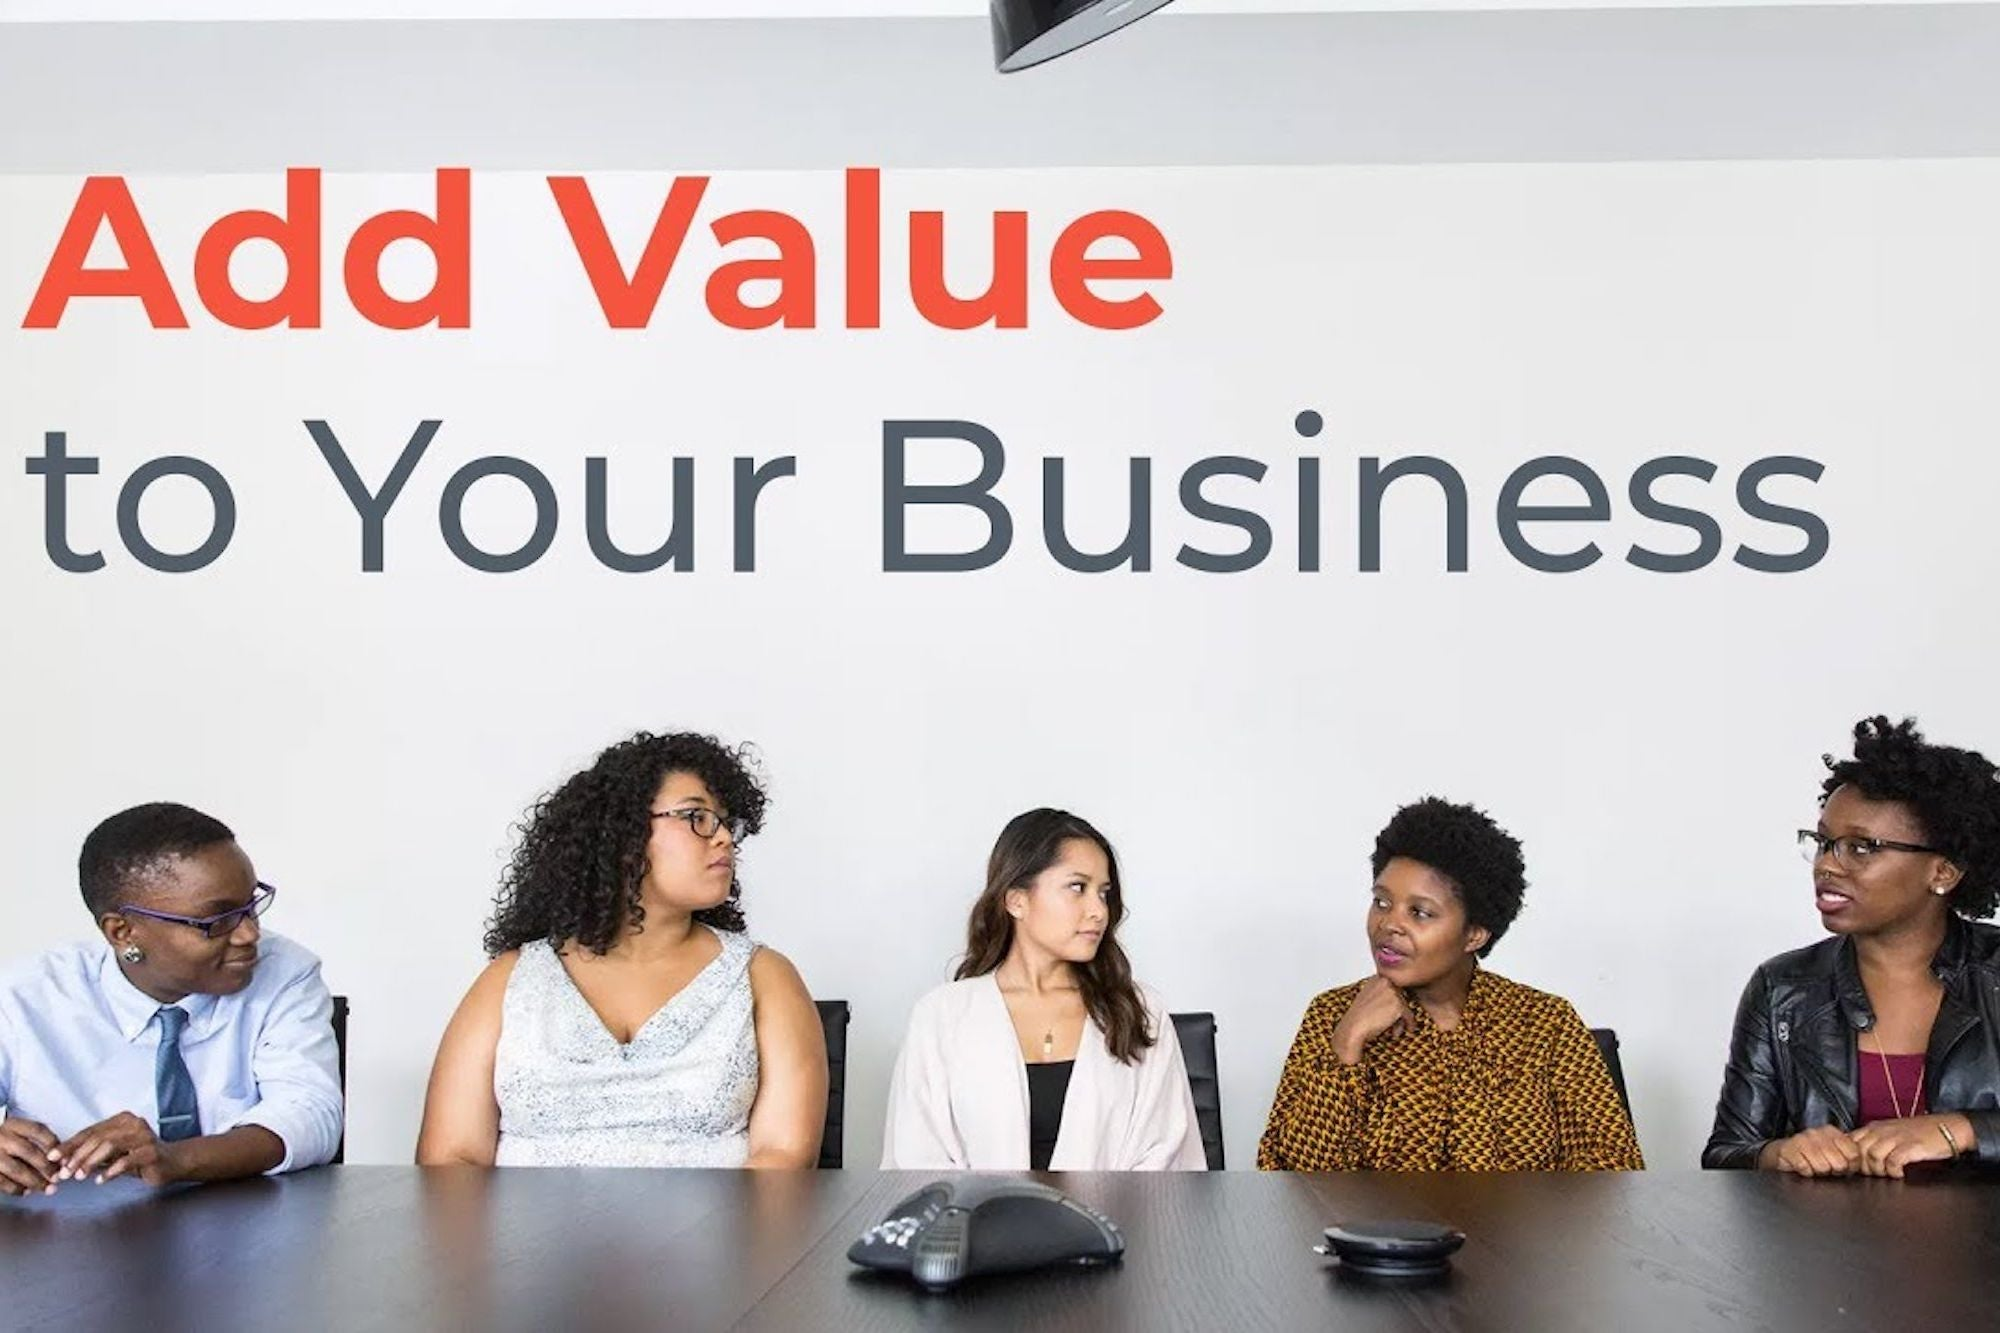 How to Improve Your Business and Add Value for Your Customer